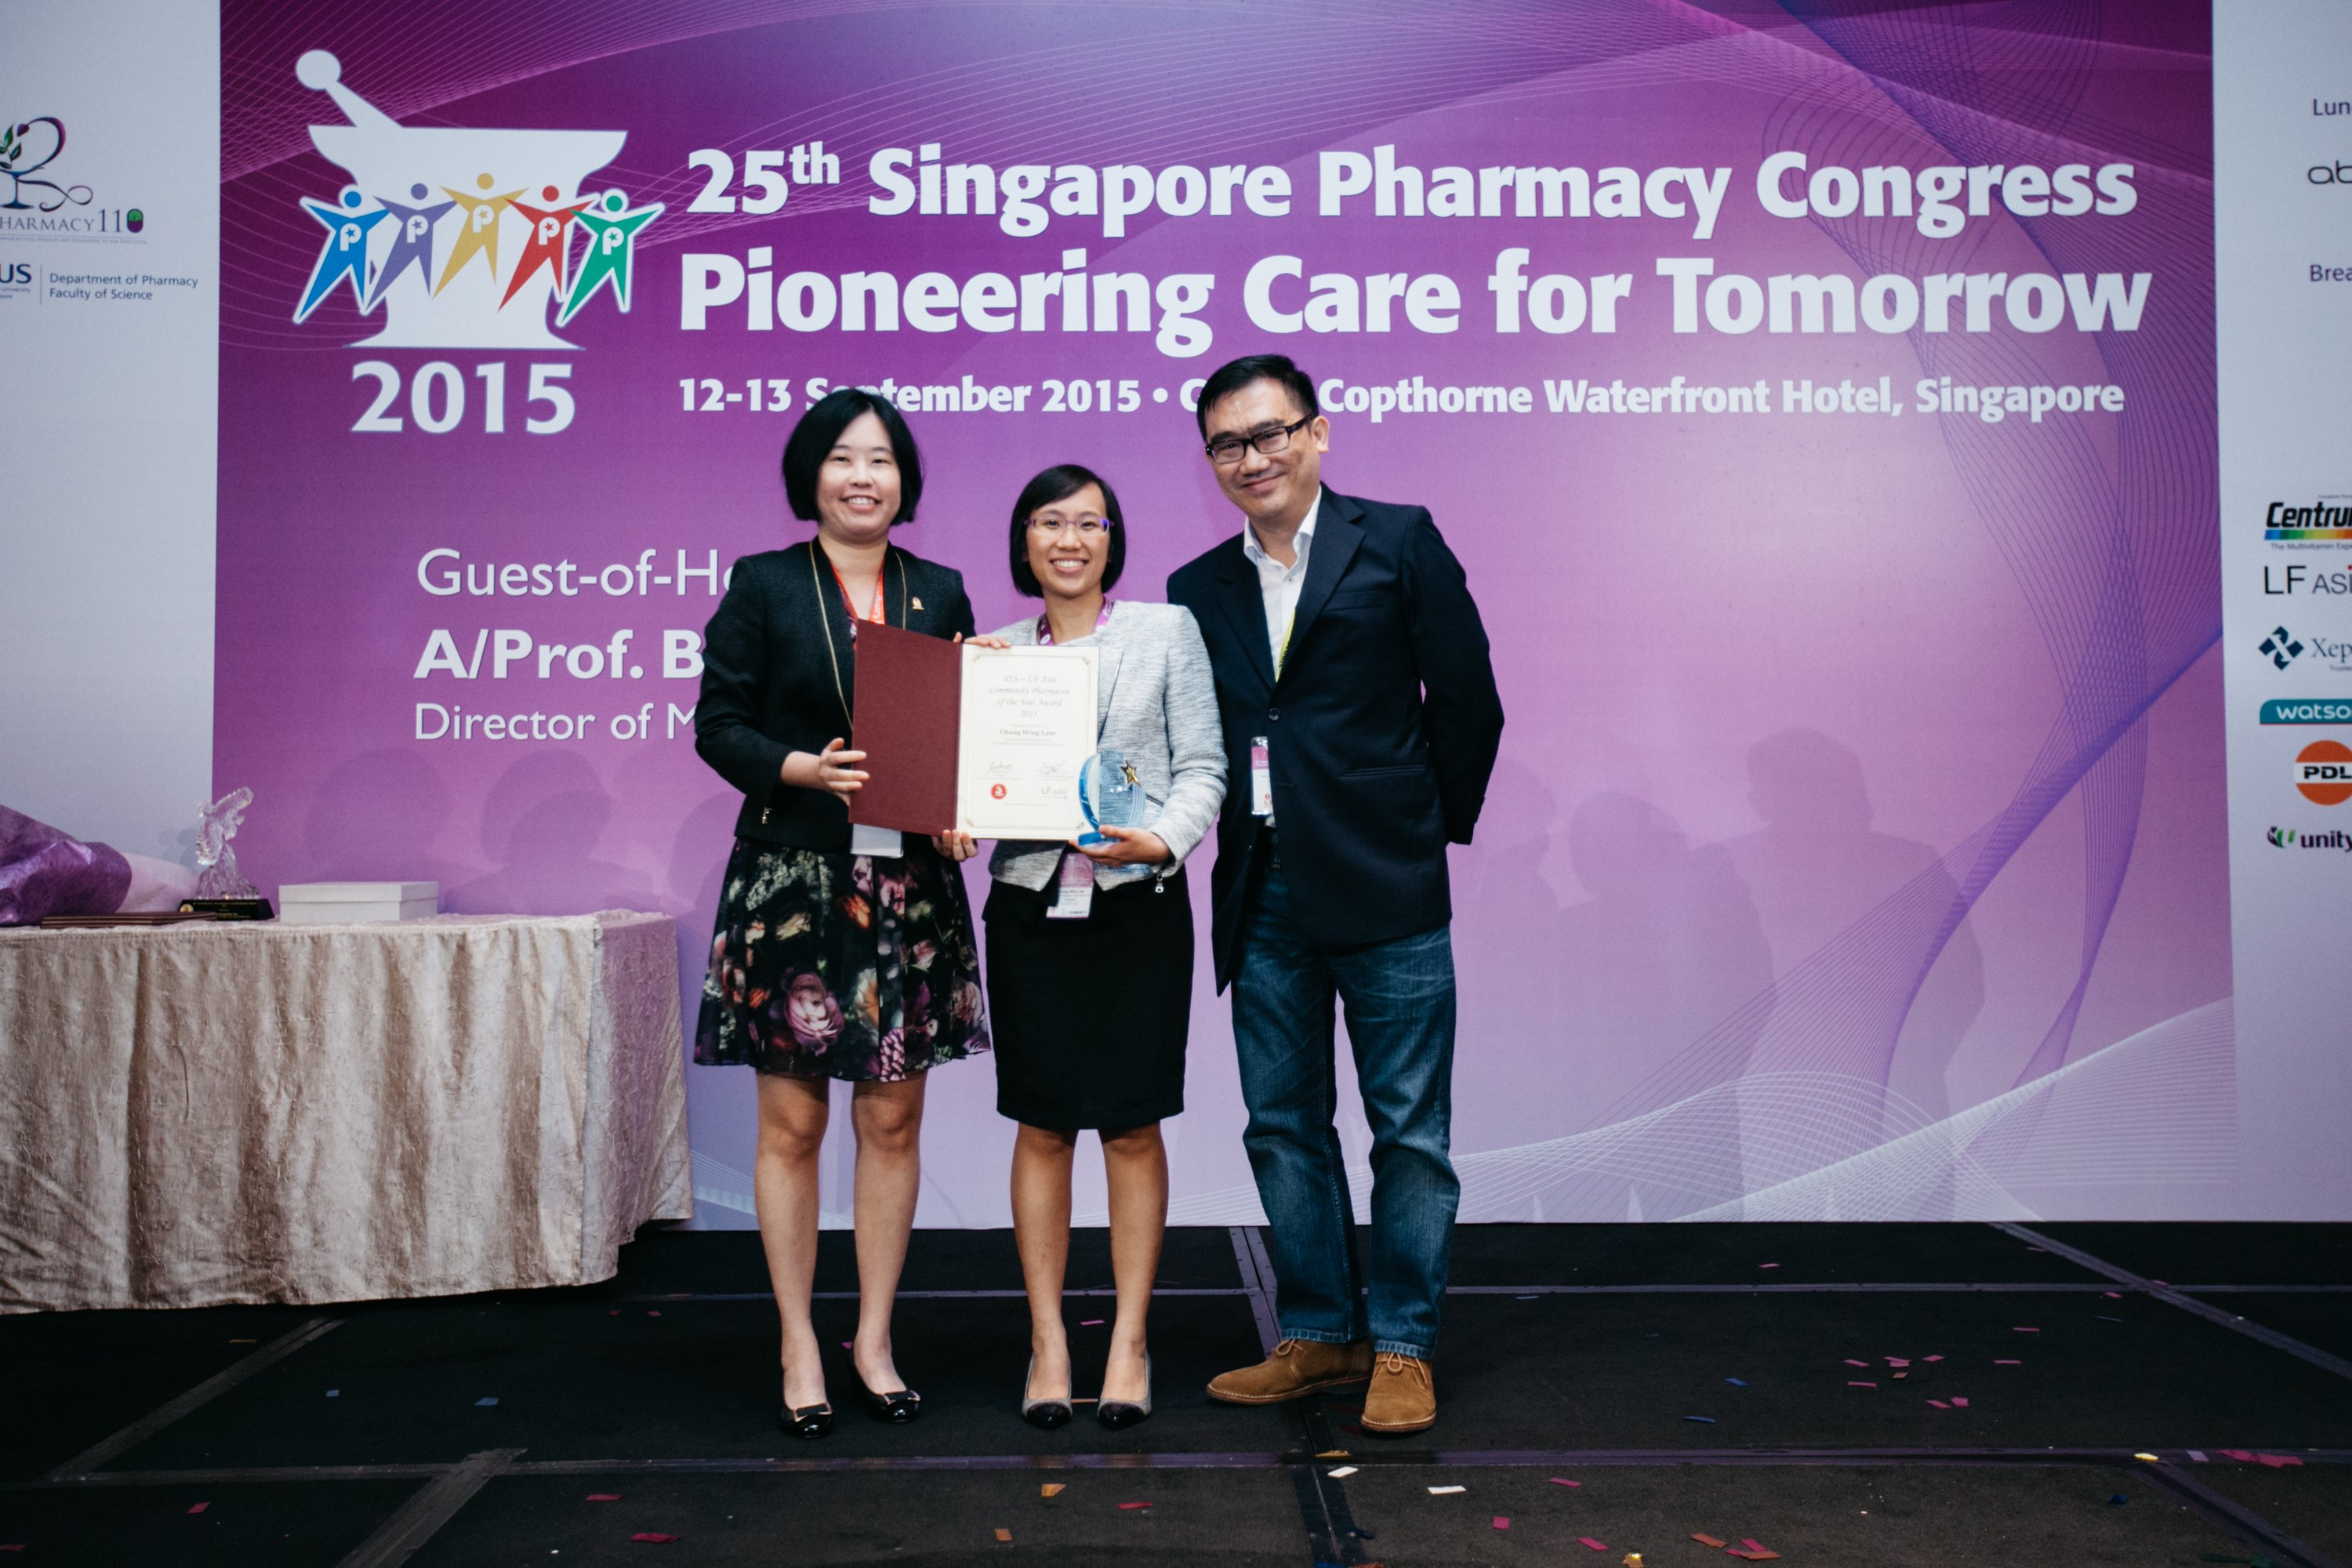 interview pss lf asia community pharmacist of the year interview pss lf asia community pharmacist of the year pharmaceutical society of singapore